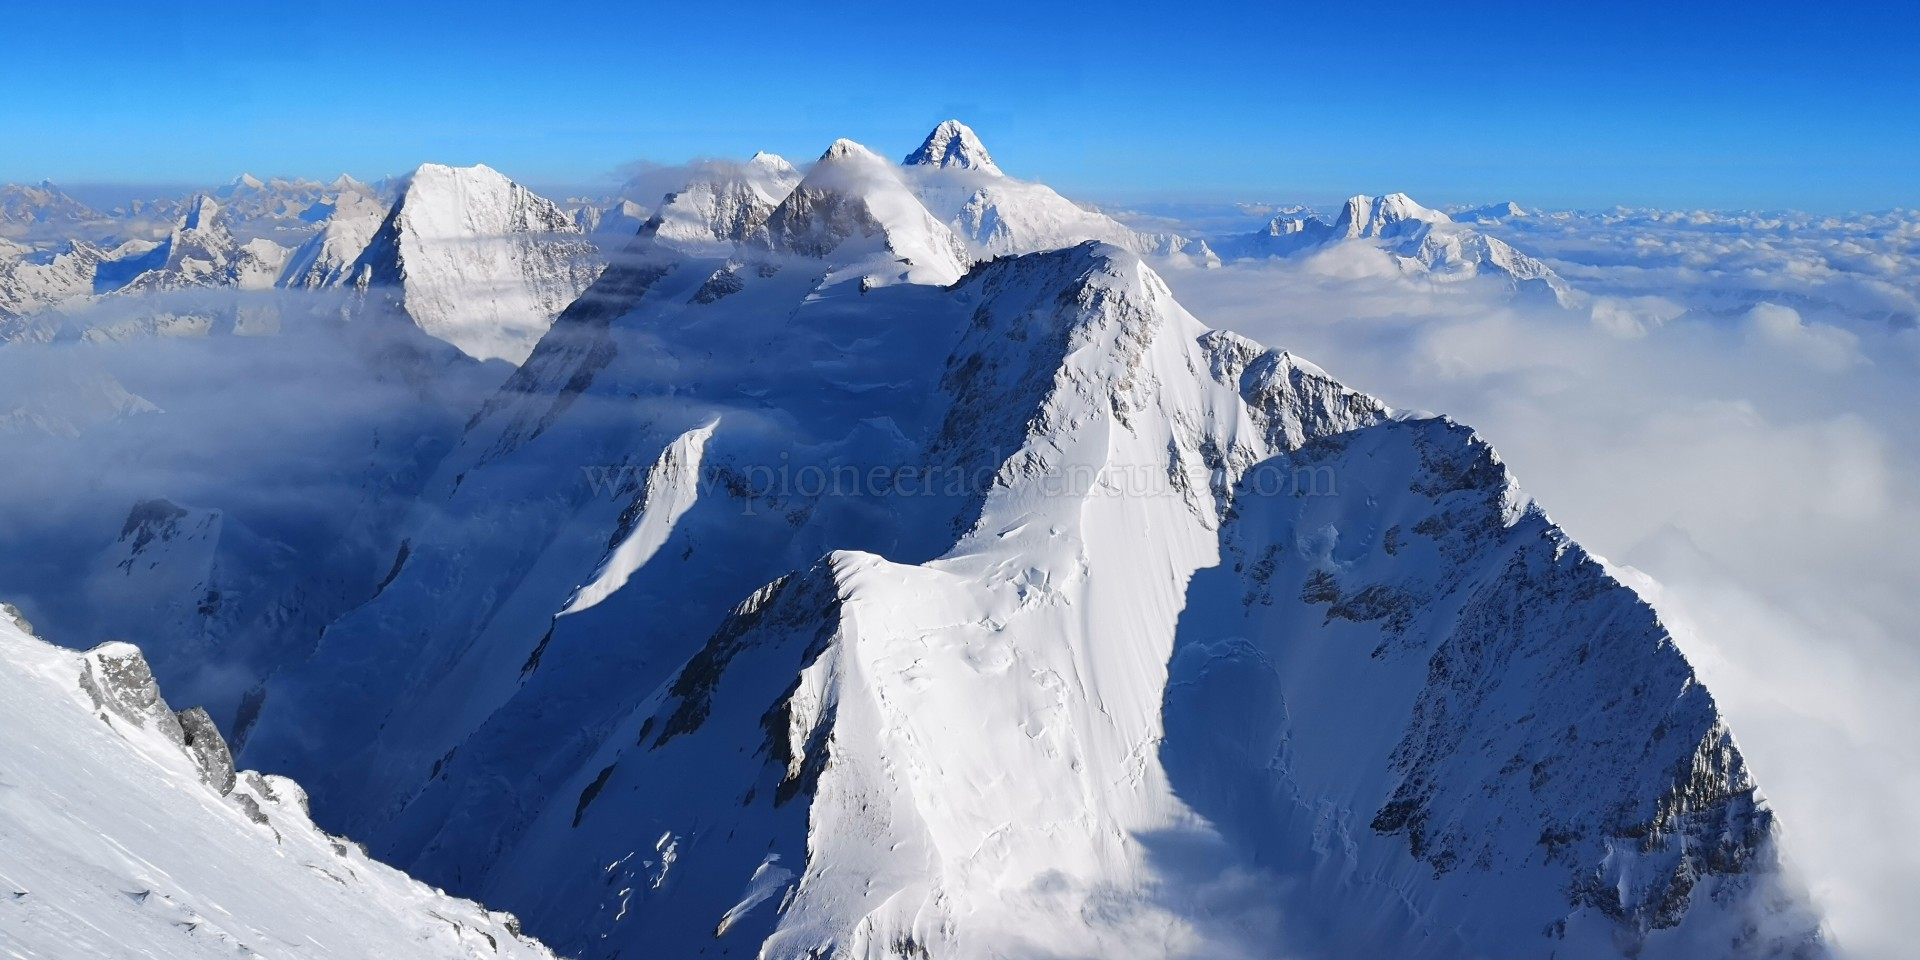 Mt. Gasherbrum II Expedition